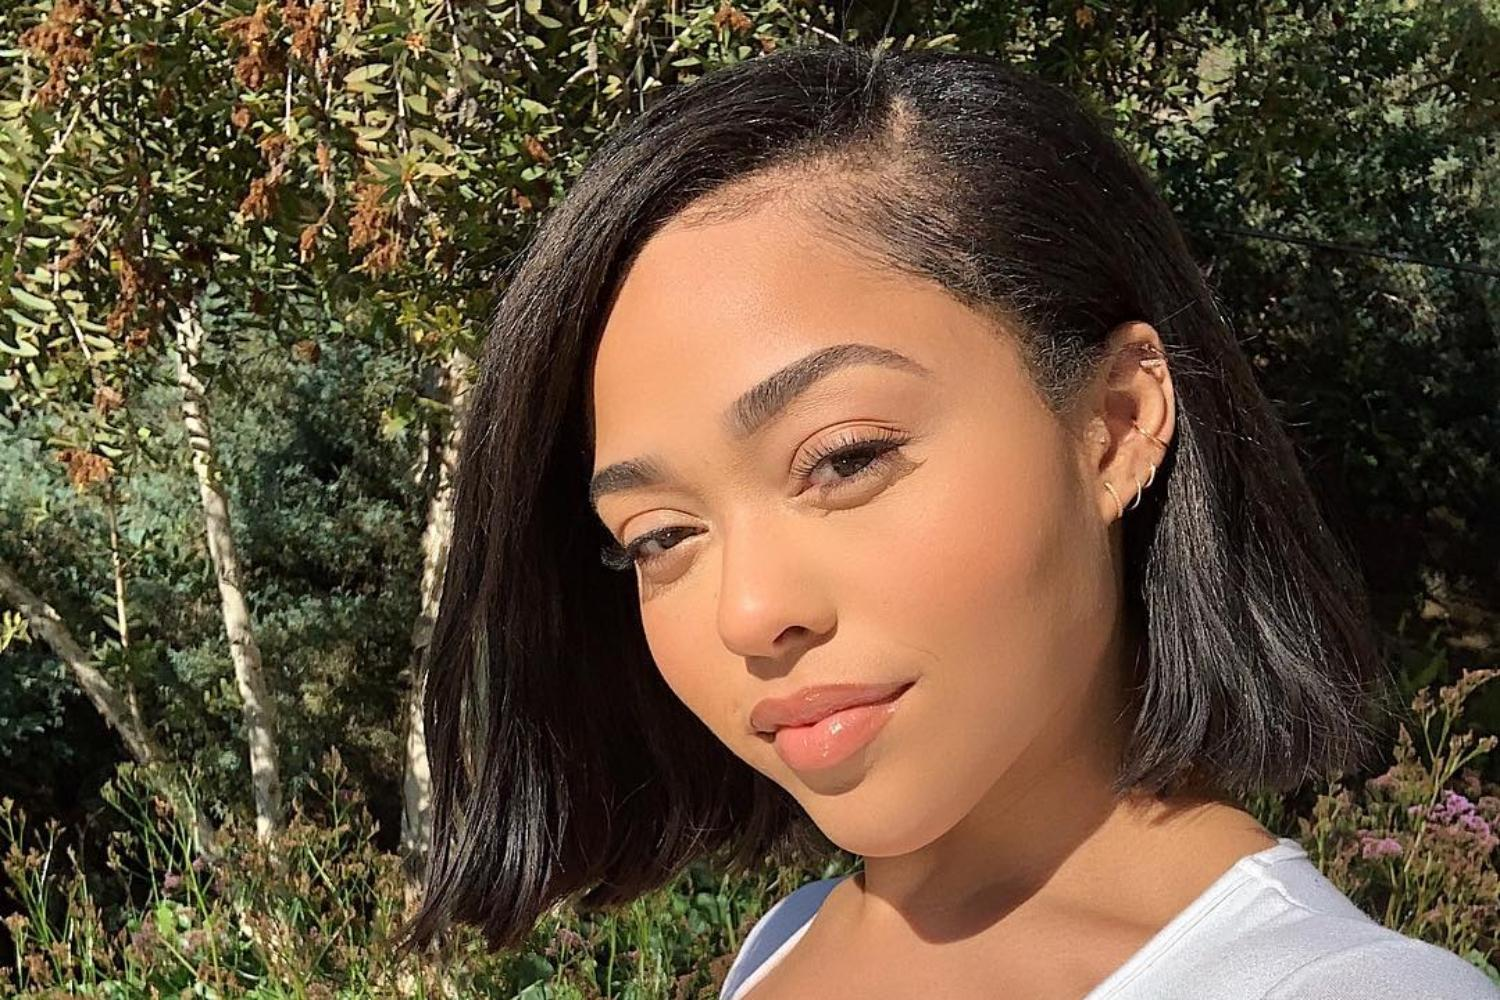 Jordyn Woods Drops Her Clothes And Shows Off Her Beach Body By The Pool - Check Out The Juicy Pics That Have Fans Praising Her Natural Curves